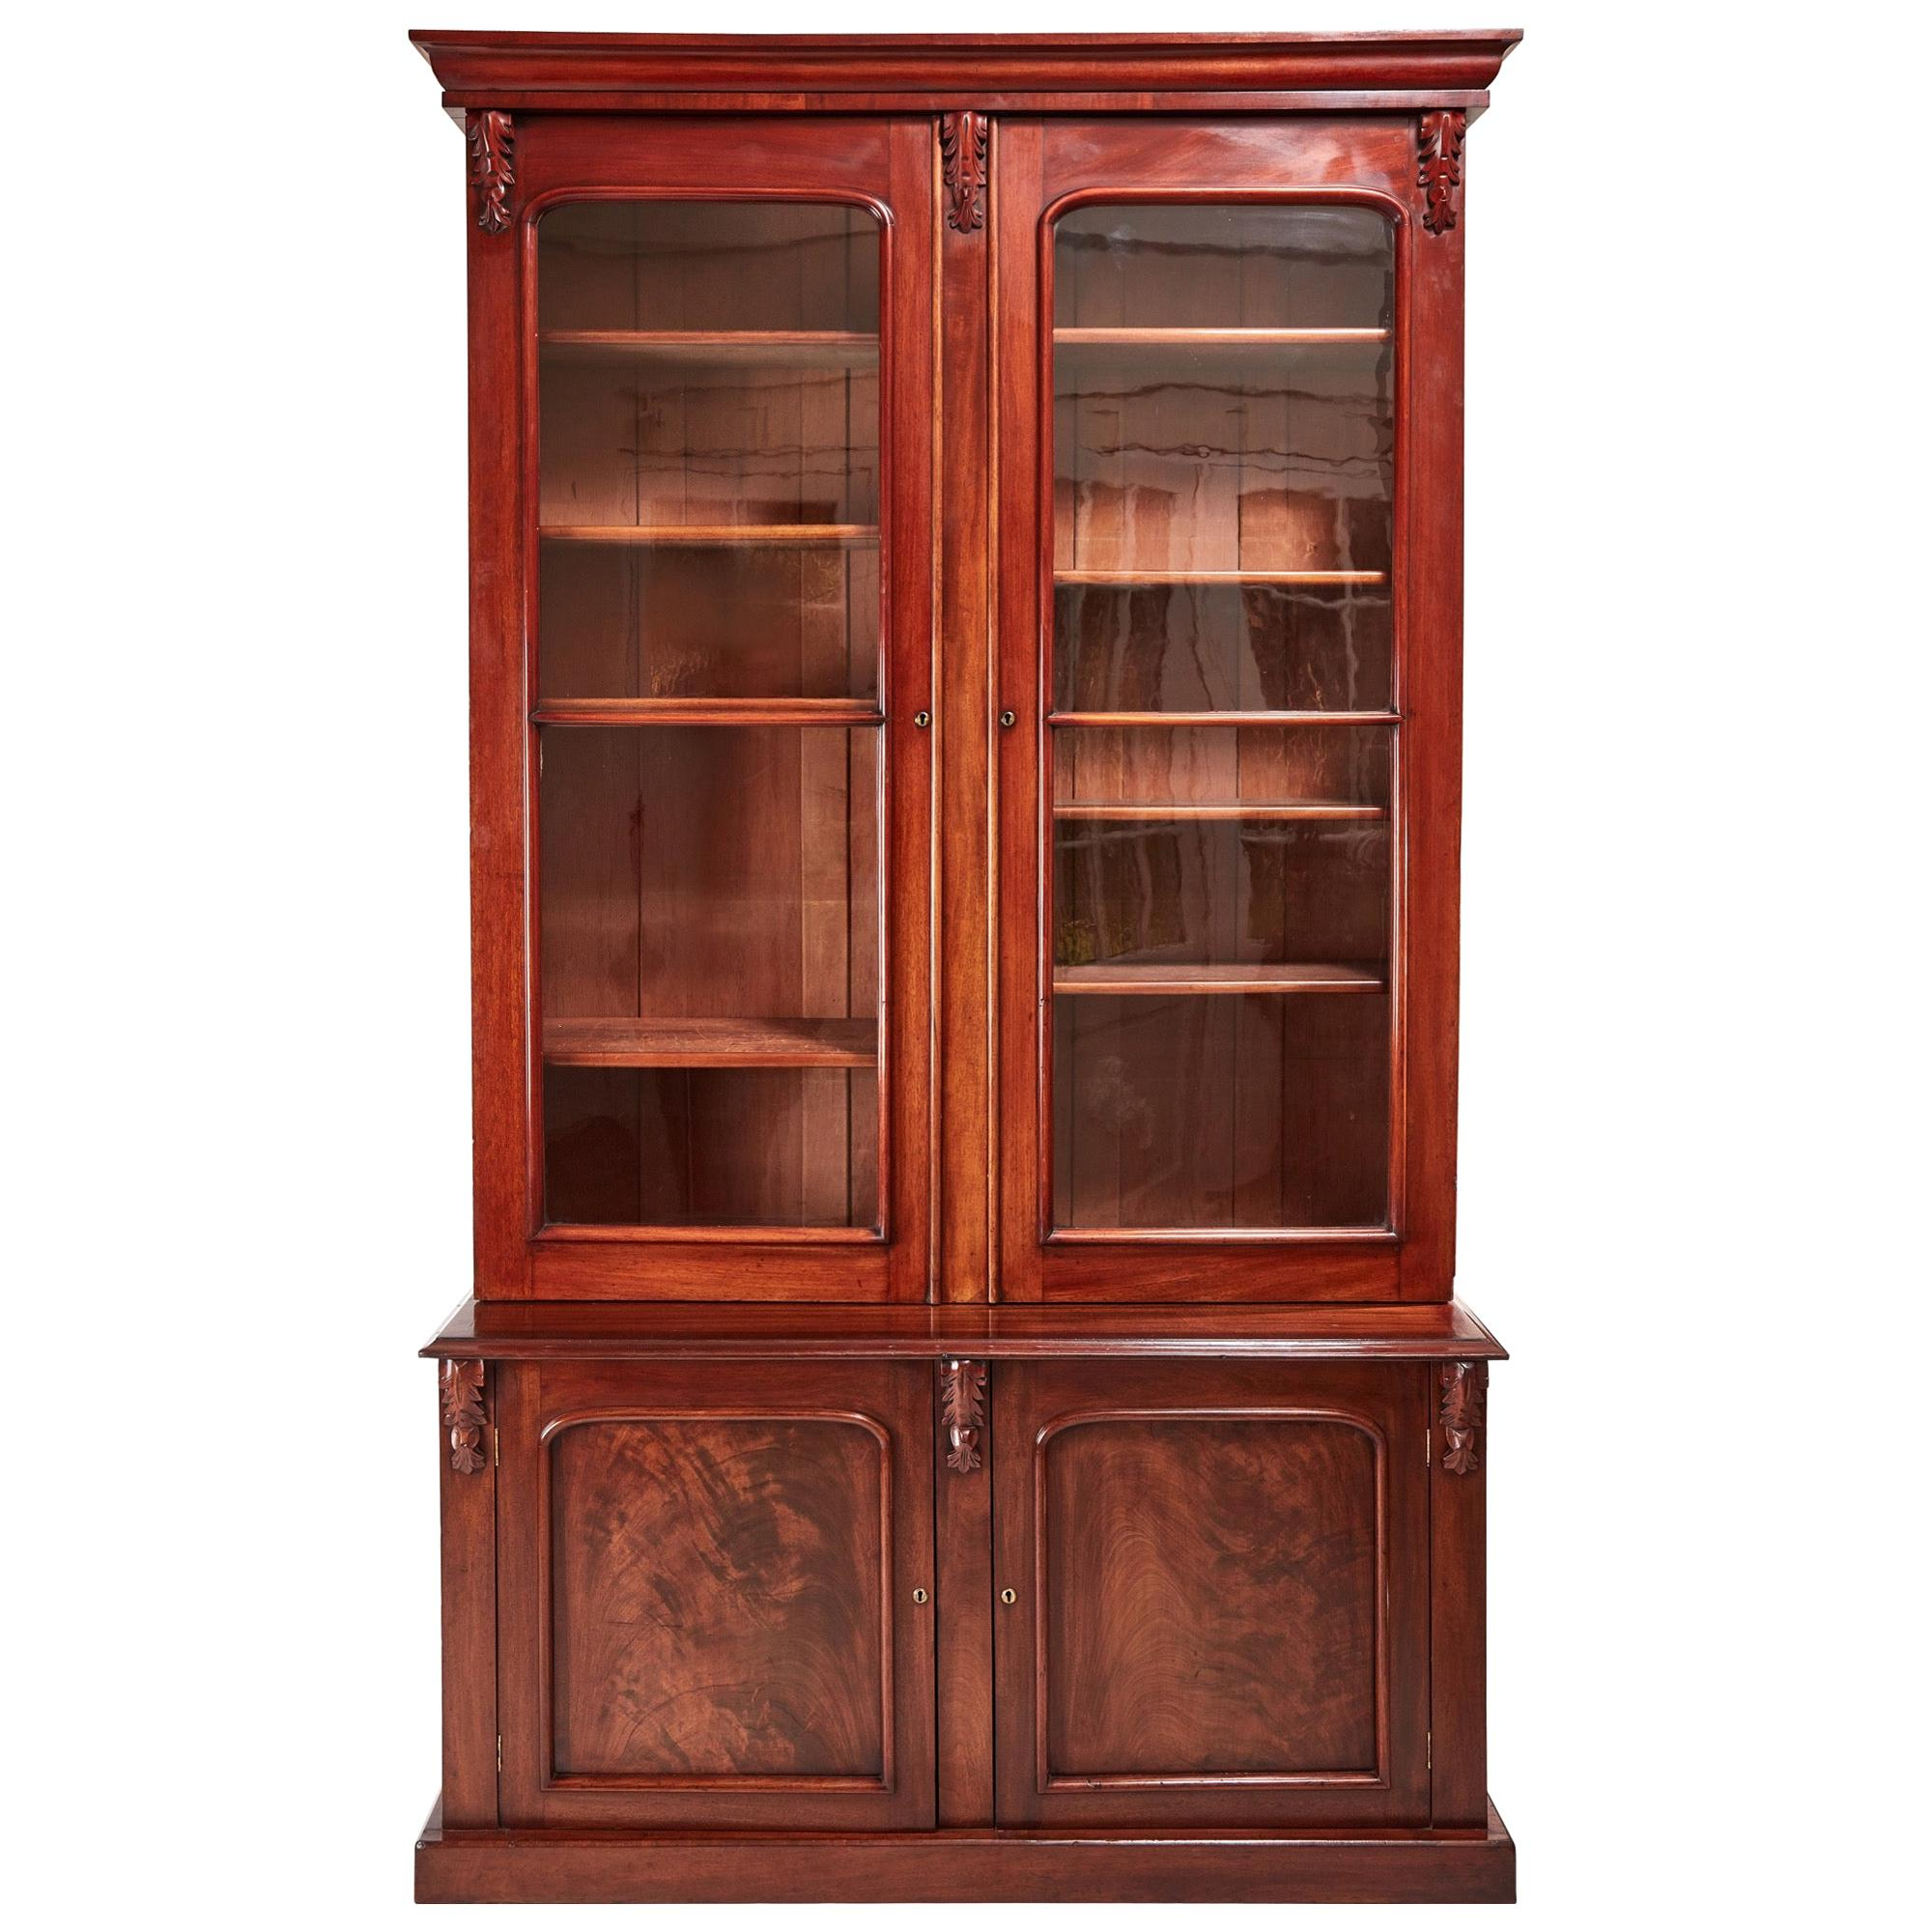 Large Quality Antique Victorian Mahogany Bookcase